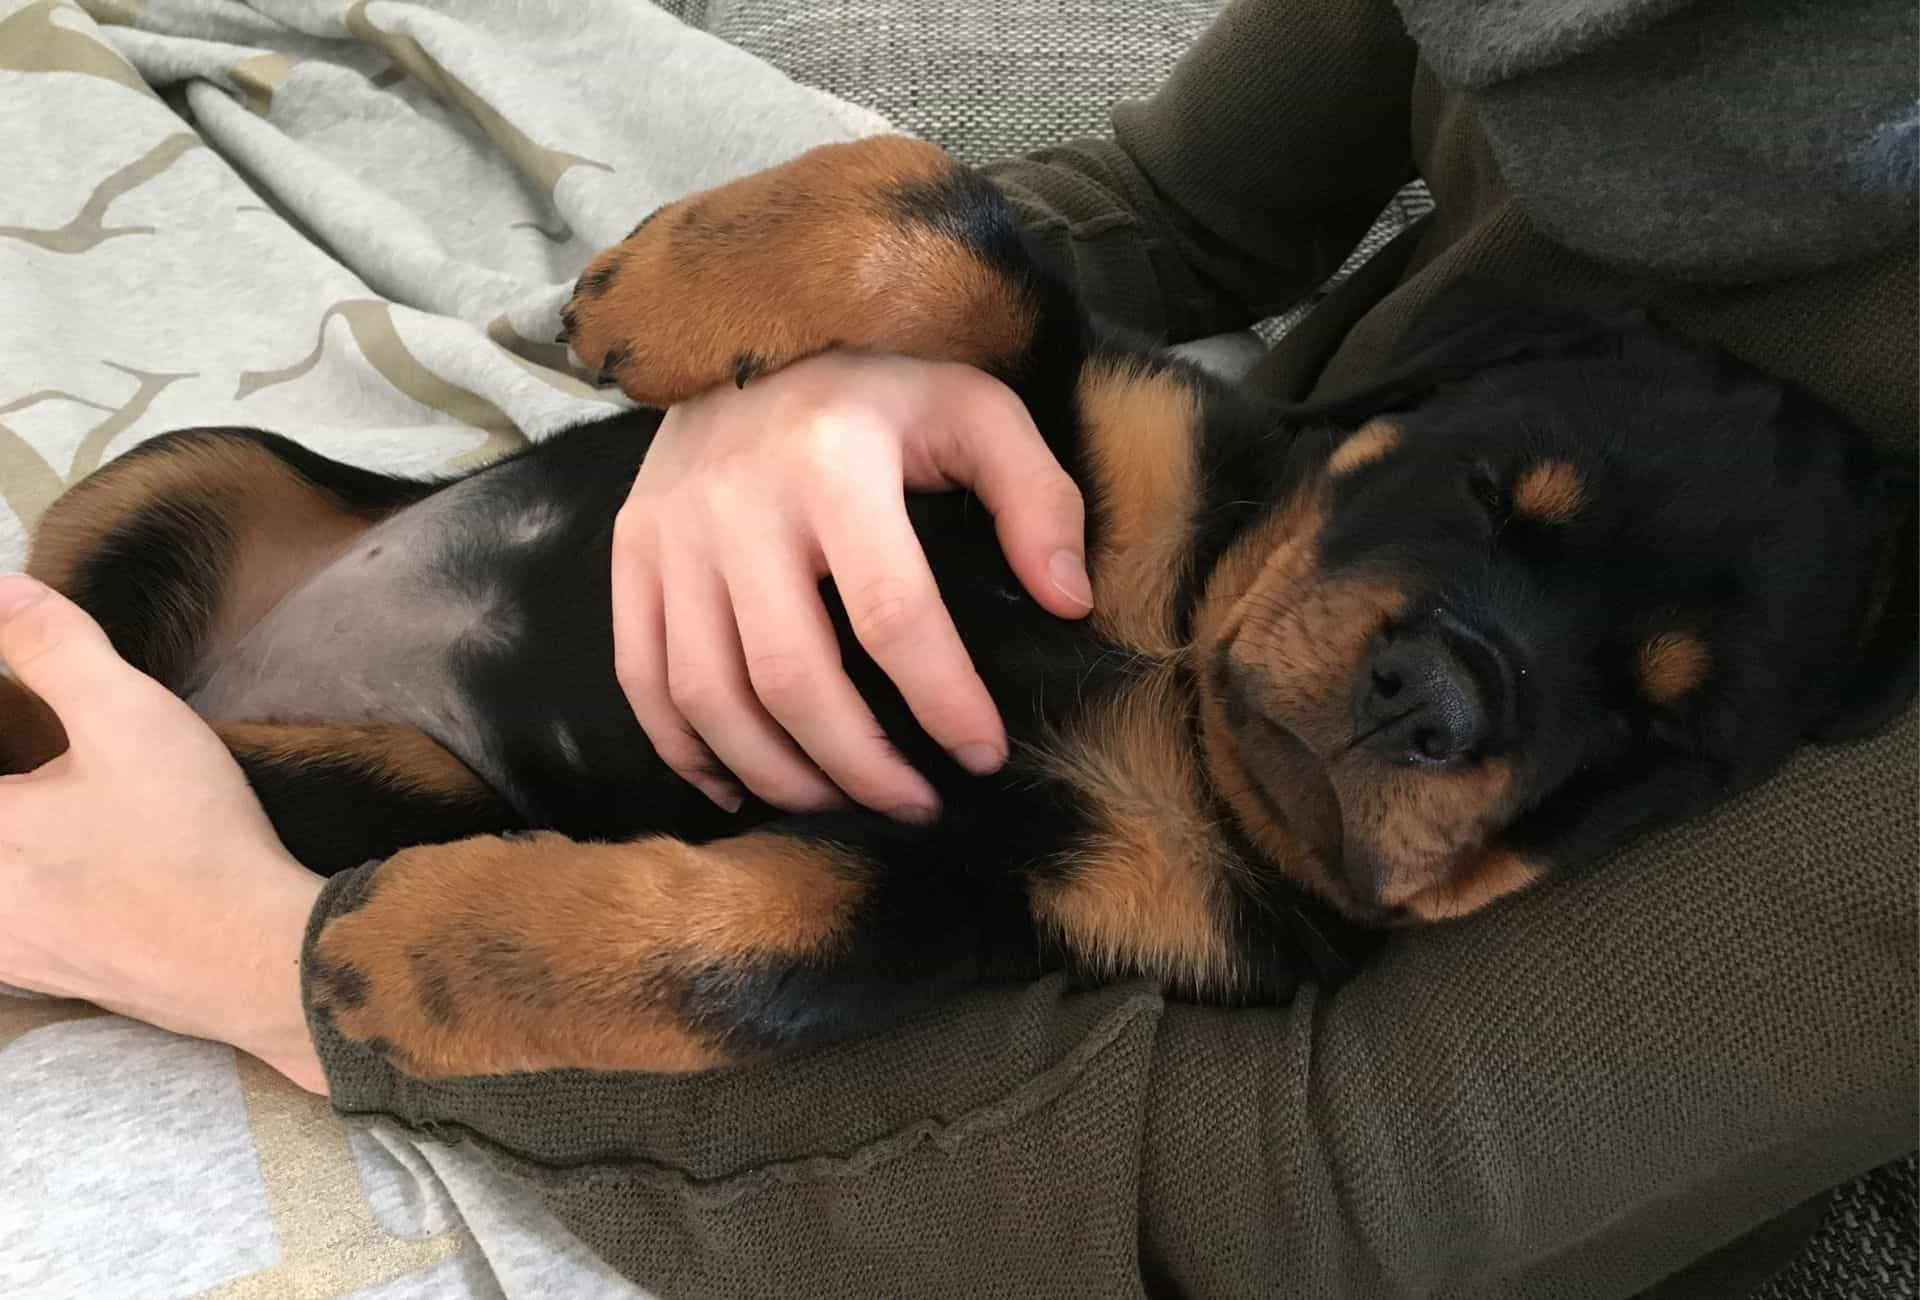 Picture of my Rottweiler puppy sleeping on her back after she's been on a walk and exercised properly.